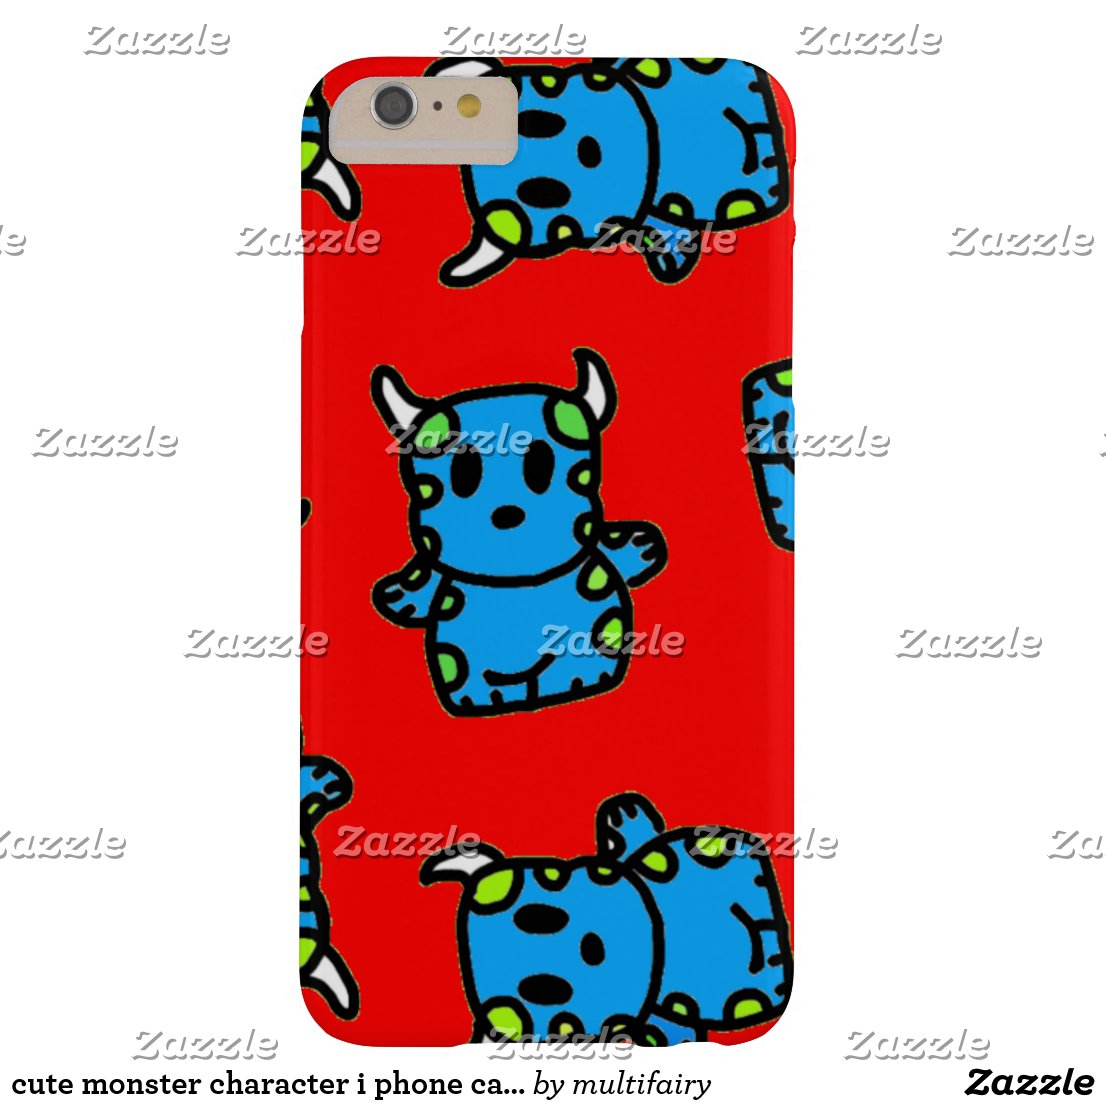 cute monster character i phone case phone case